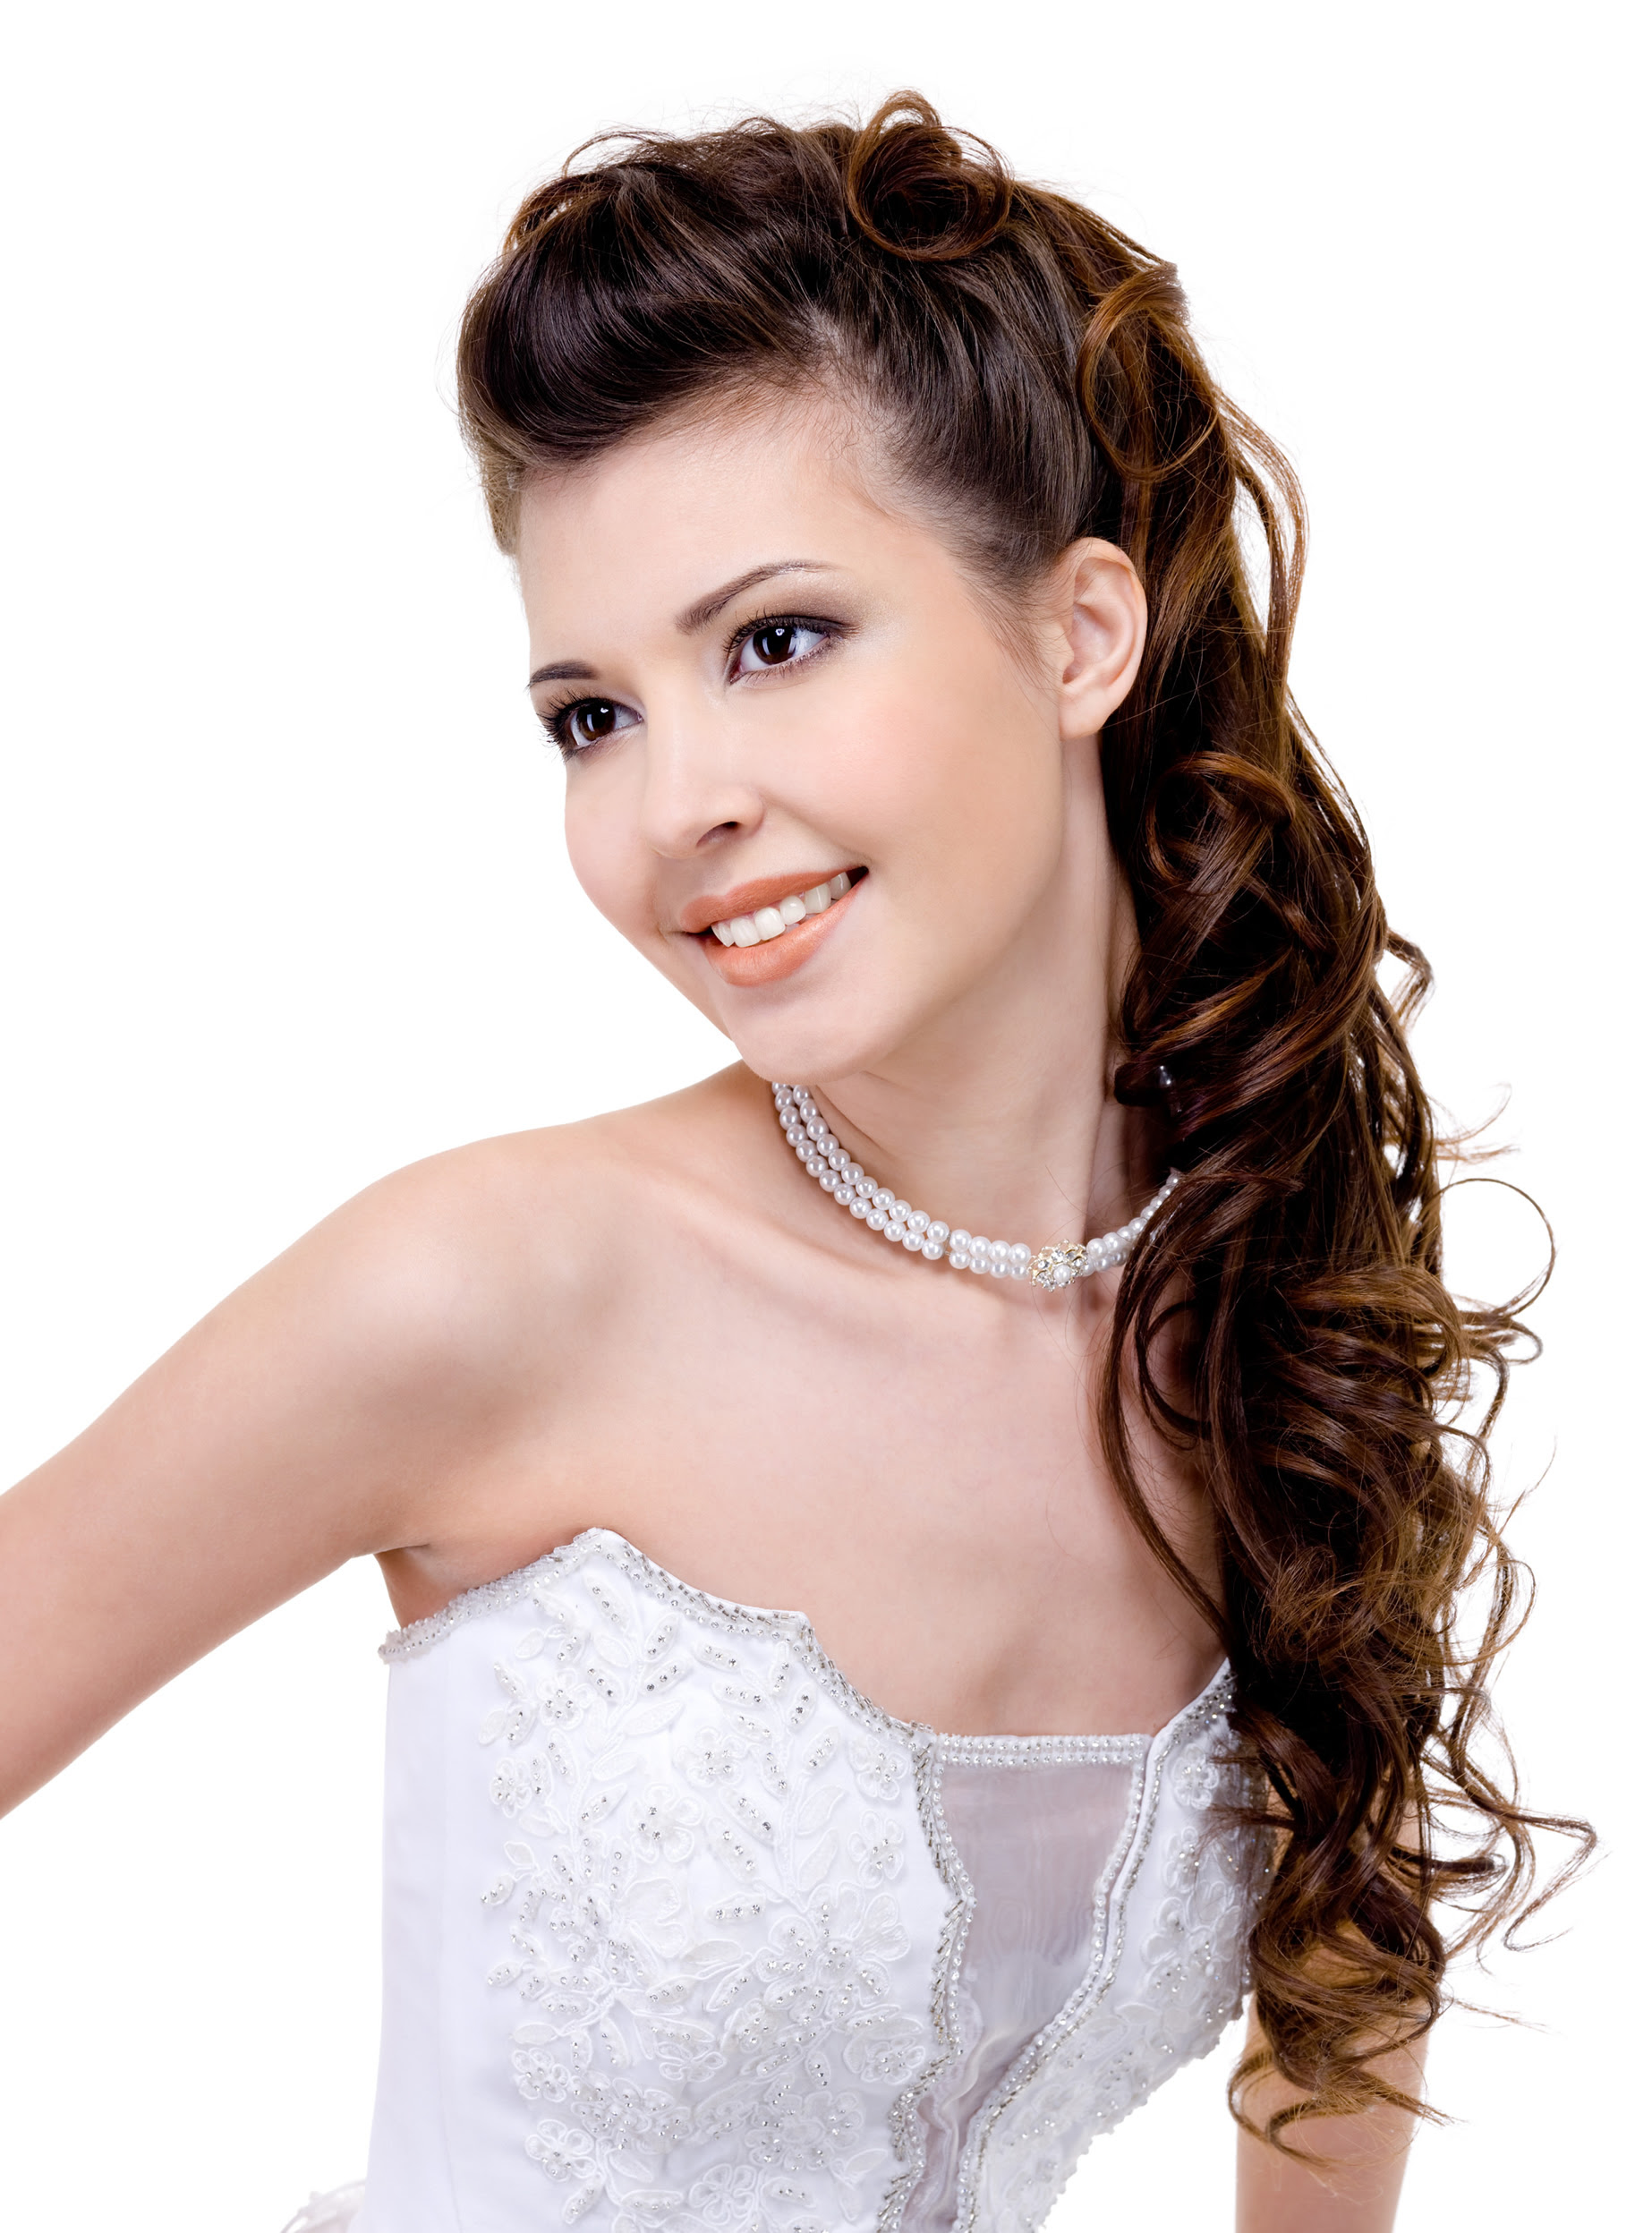 30 Romantic Long Bridal Wedding Hairstyles to Try - Wohh ...